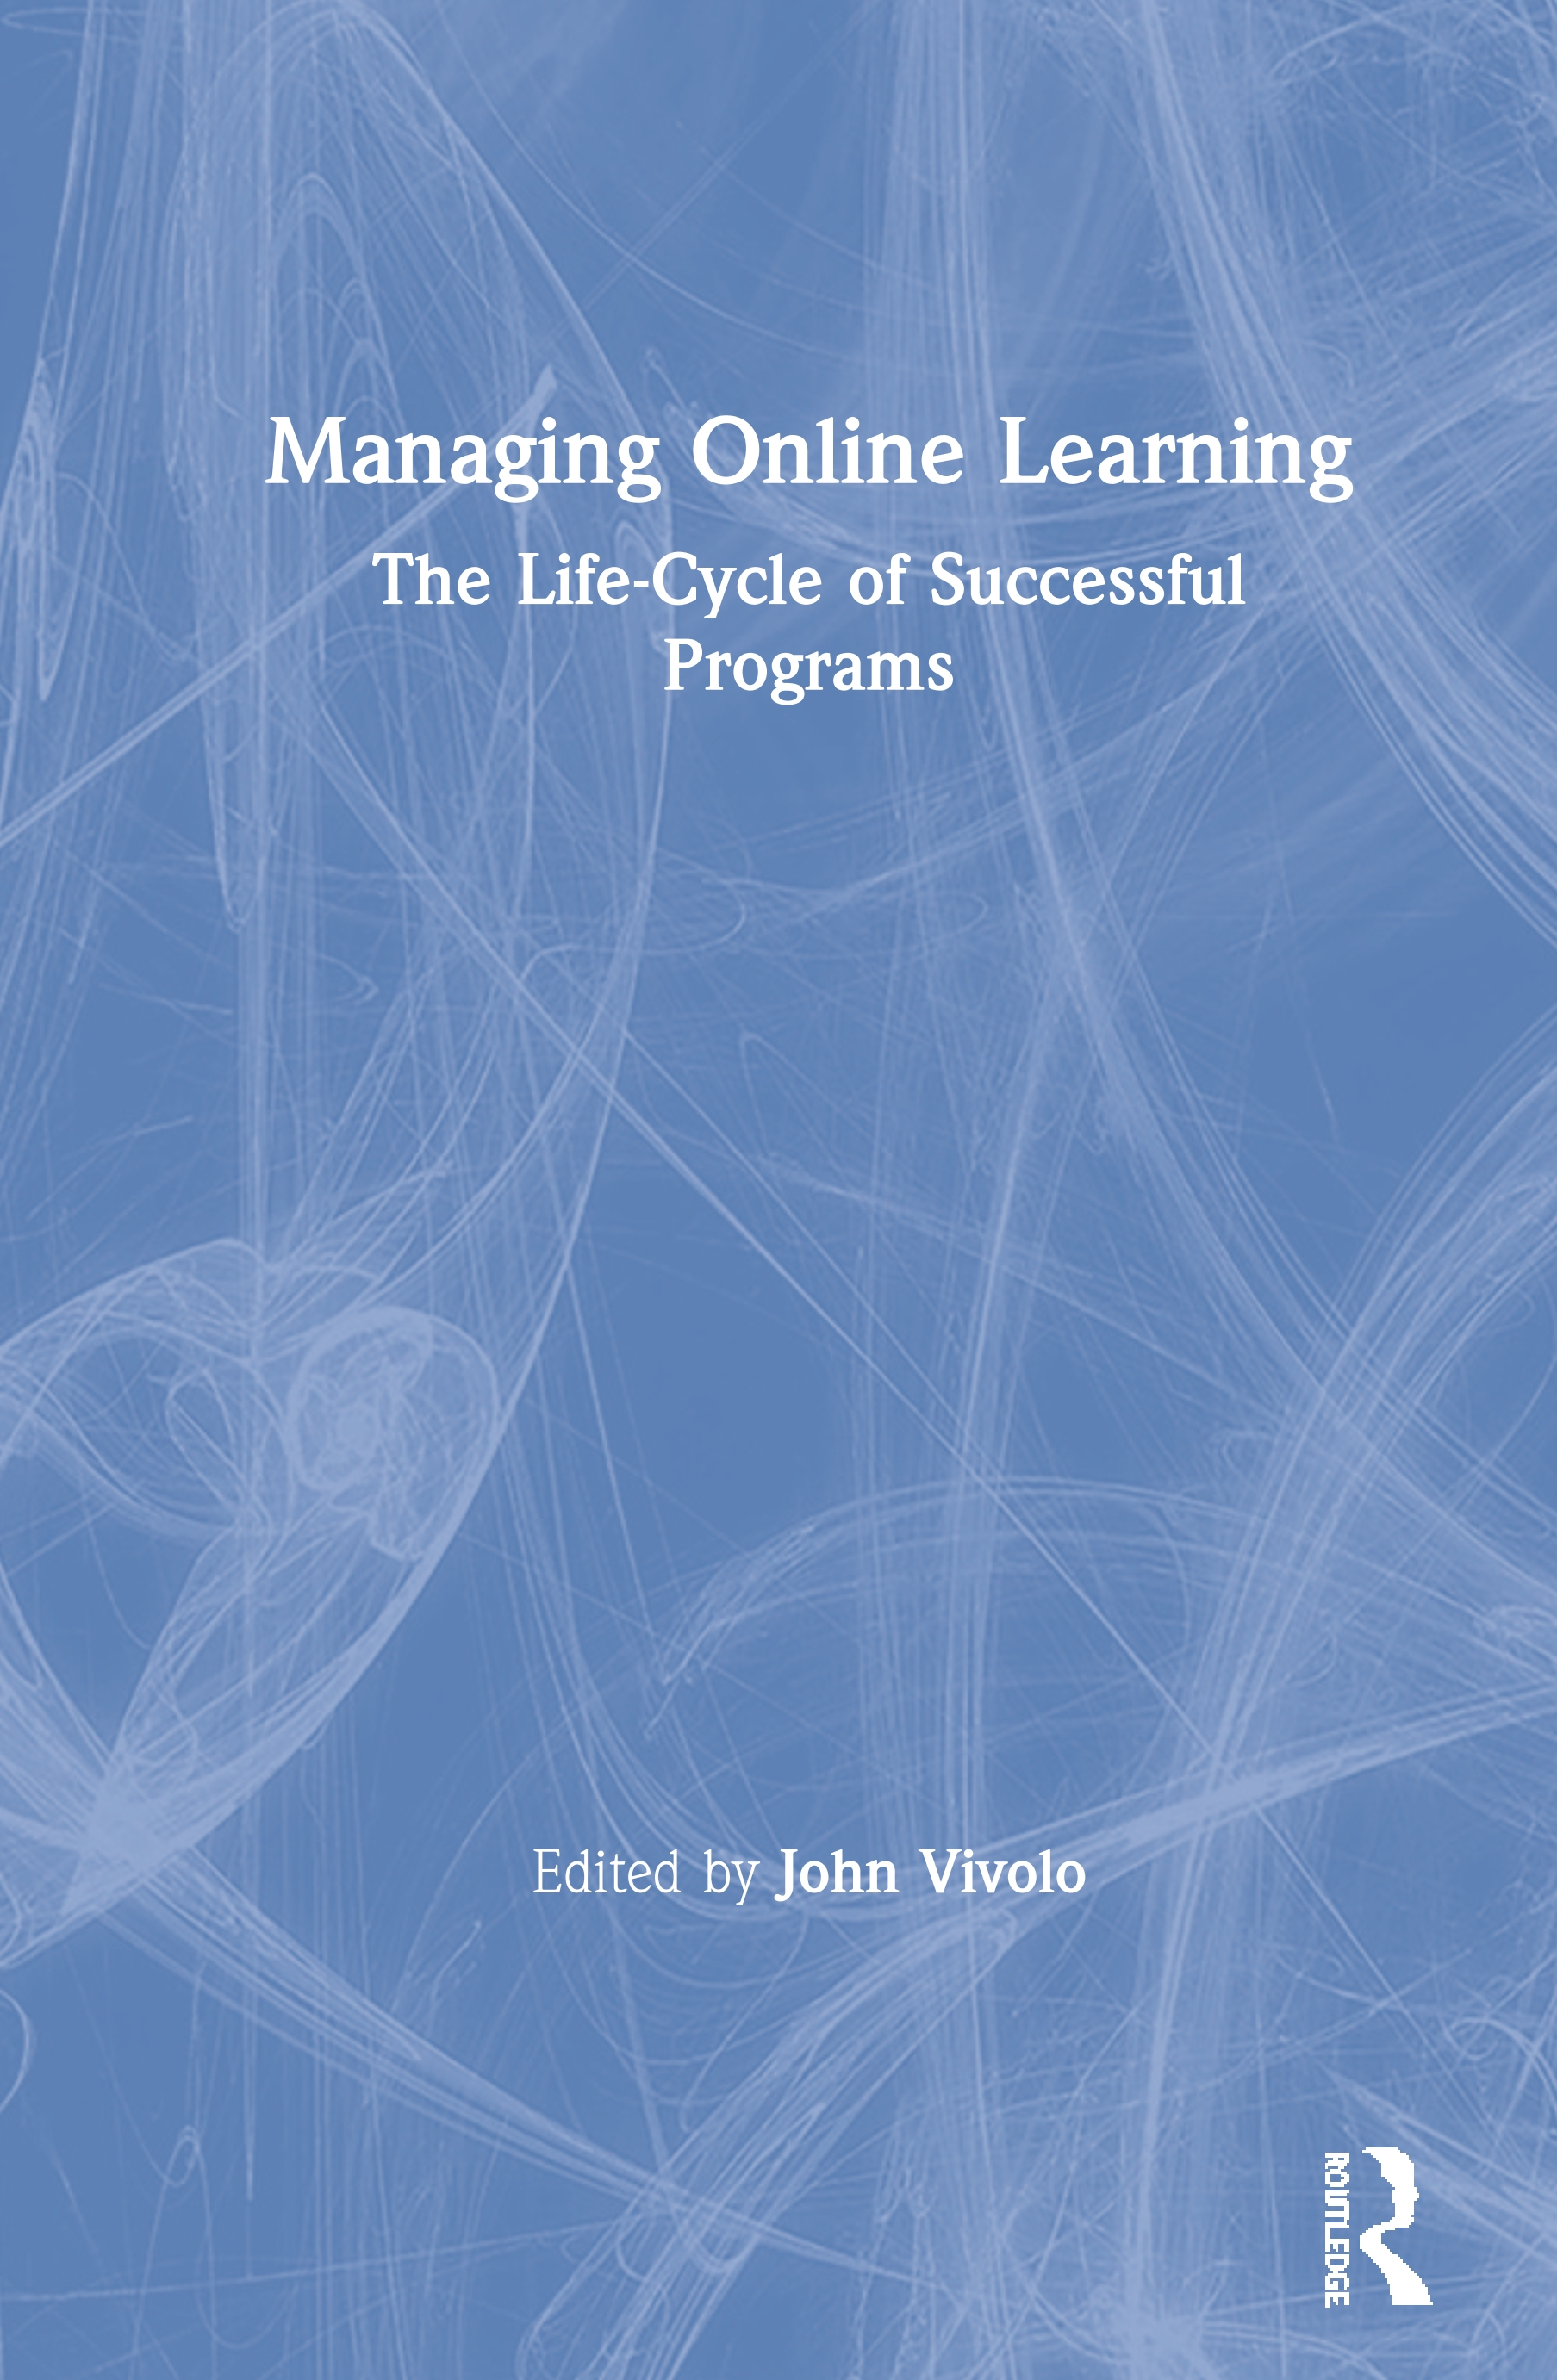 Managing Online Learning: The Life-Cycle of Successful Programs book cover